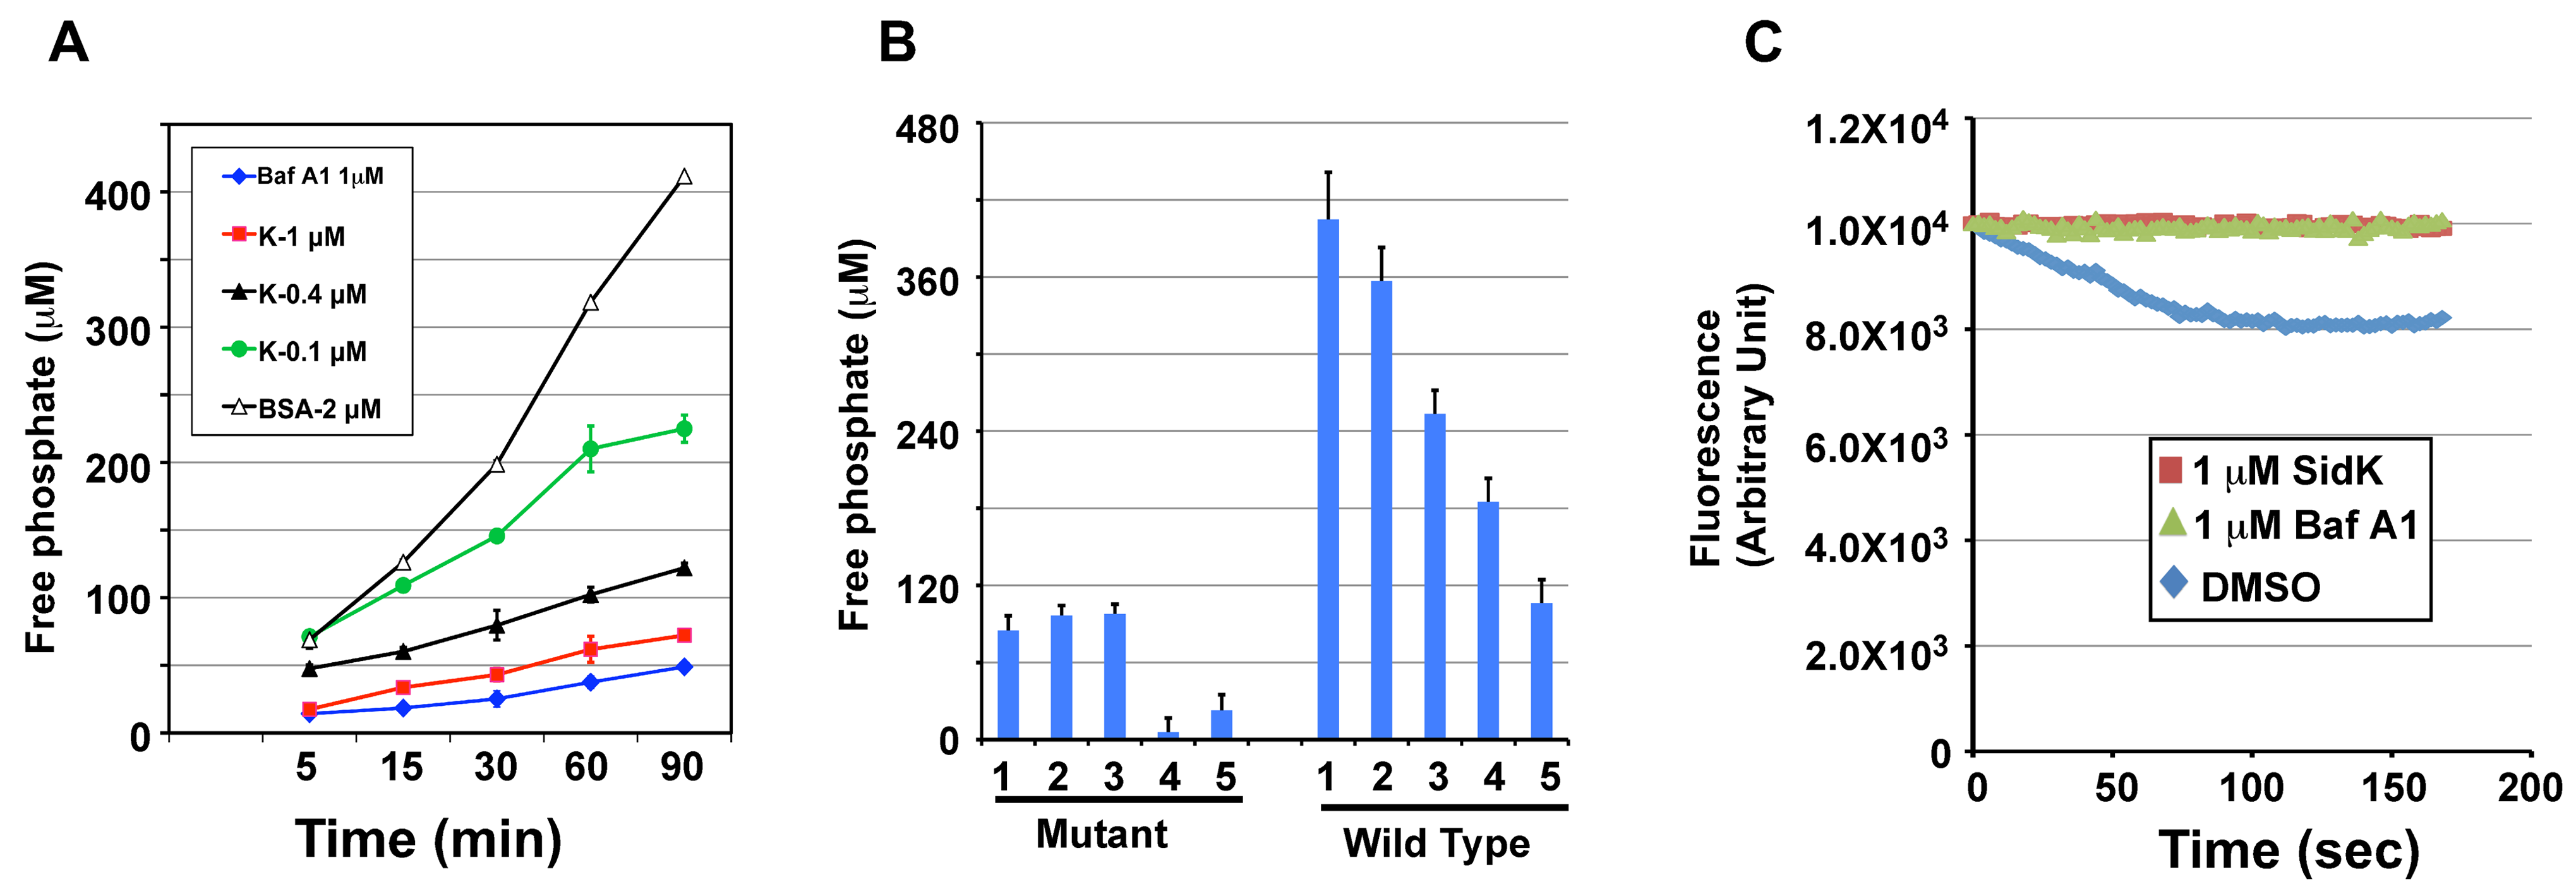 SidK inhibits v-ATPase-mediated ATP hydrolysis and proton translocation.